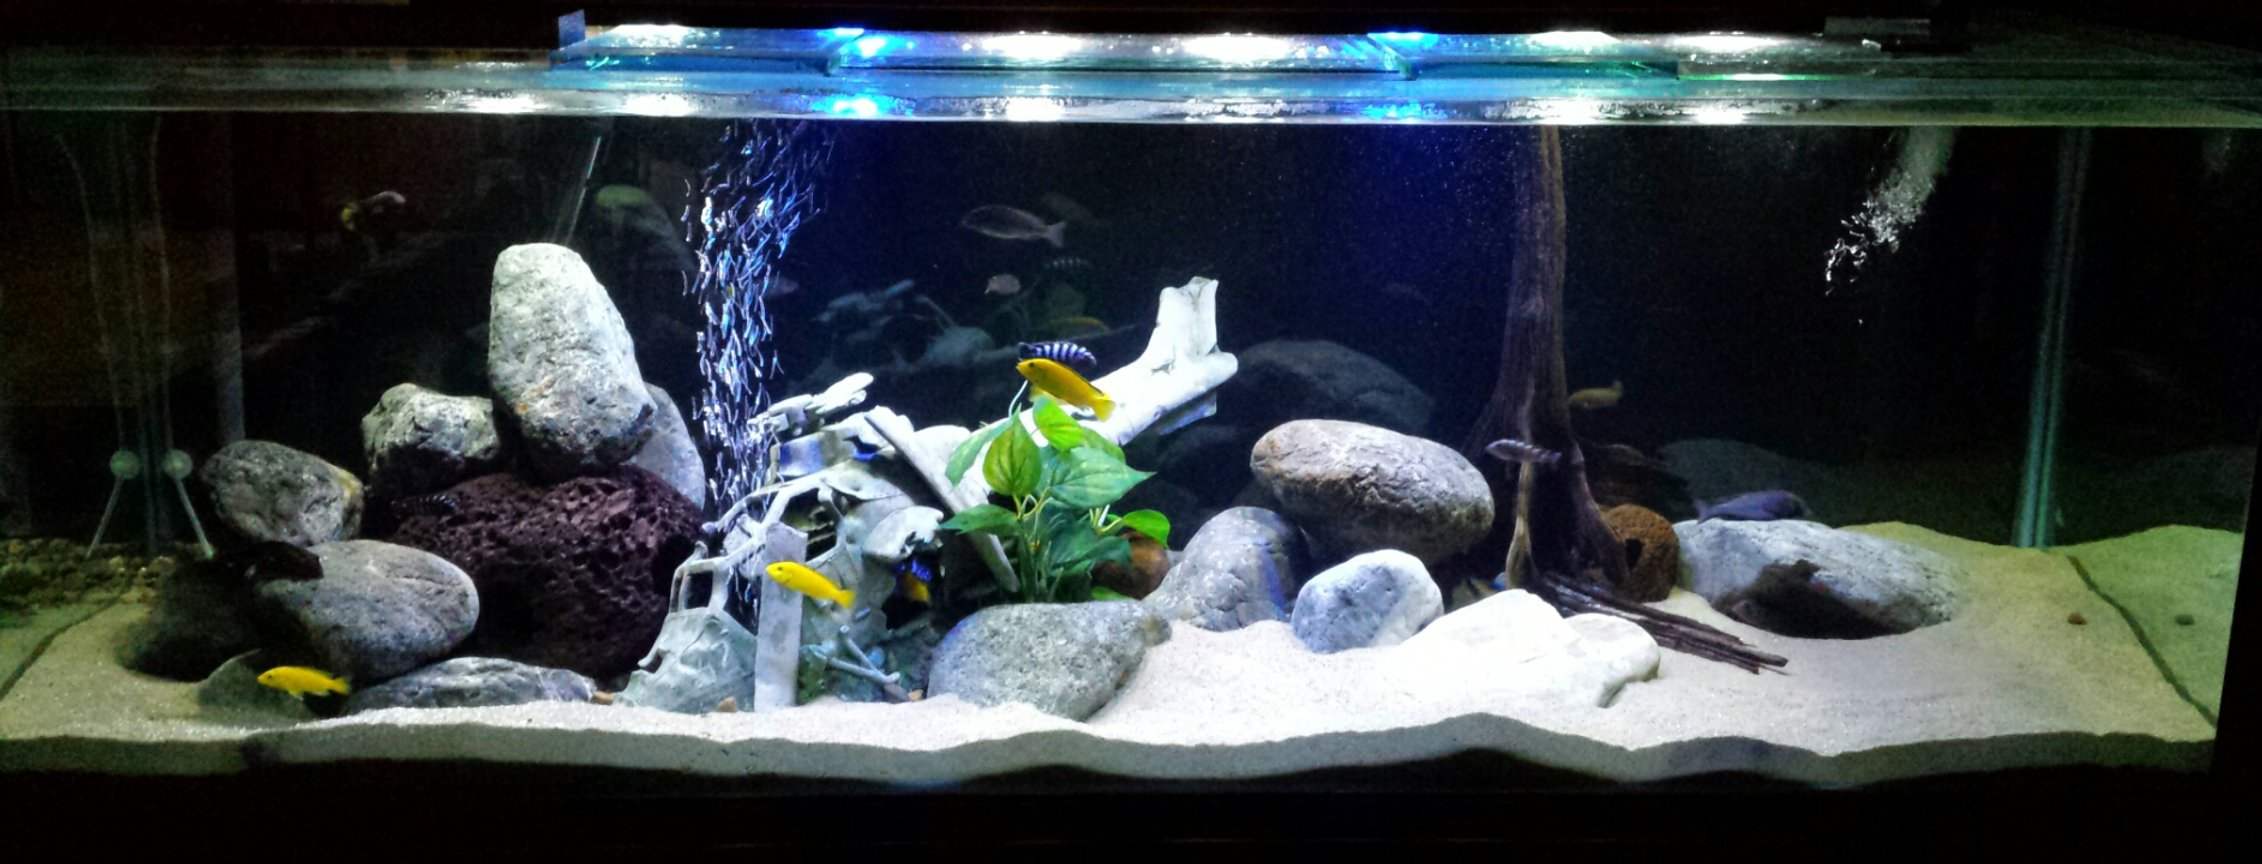 170 gallons freshwater fish tank (mostly fish and non-living decorations) - 6ft x 2ft x 2ft Lake Malawi tank 'Black Hawk Down'